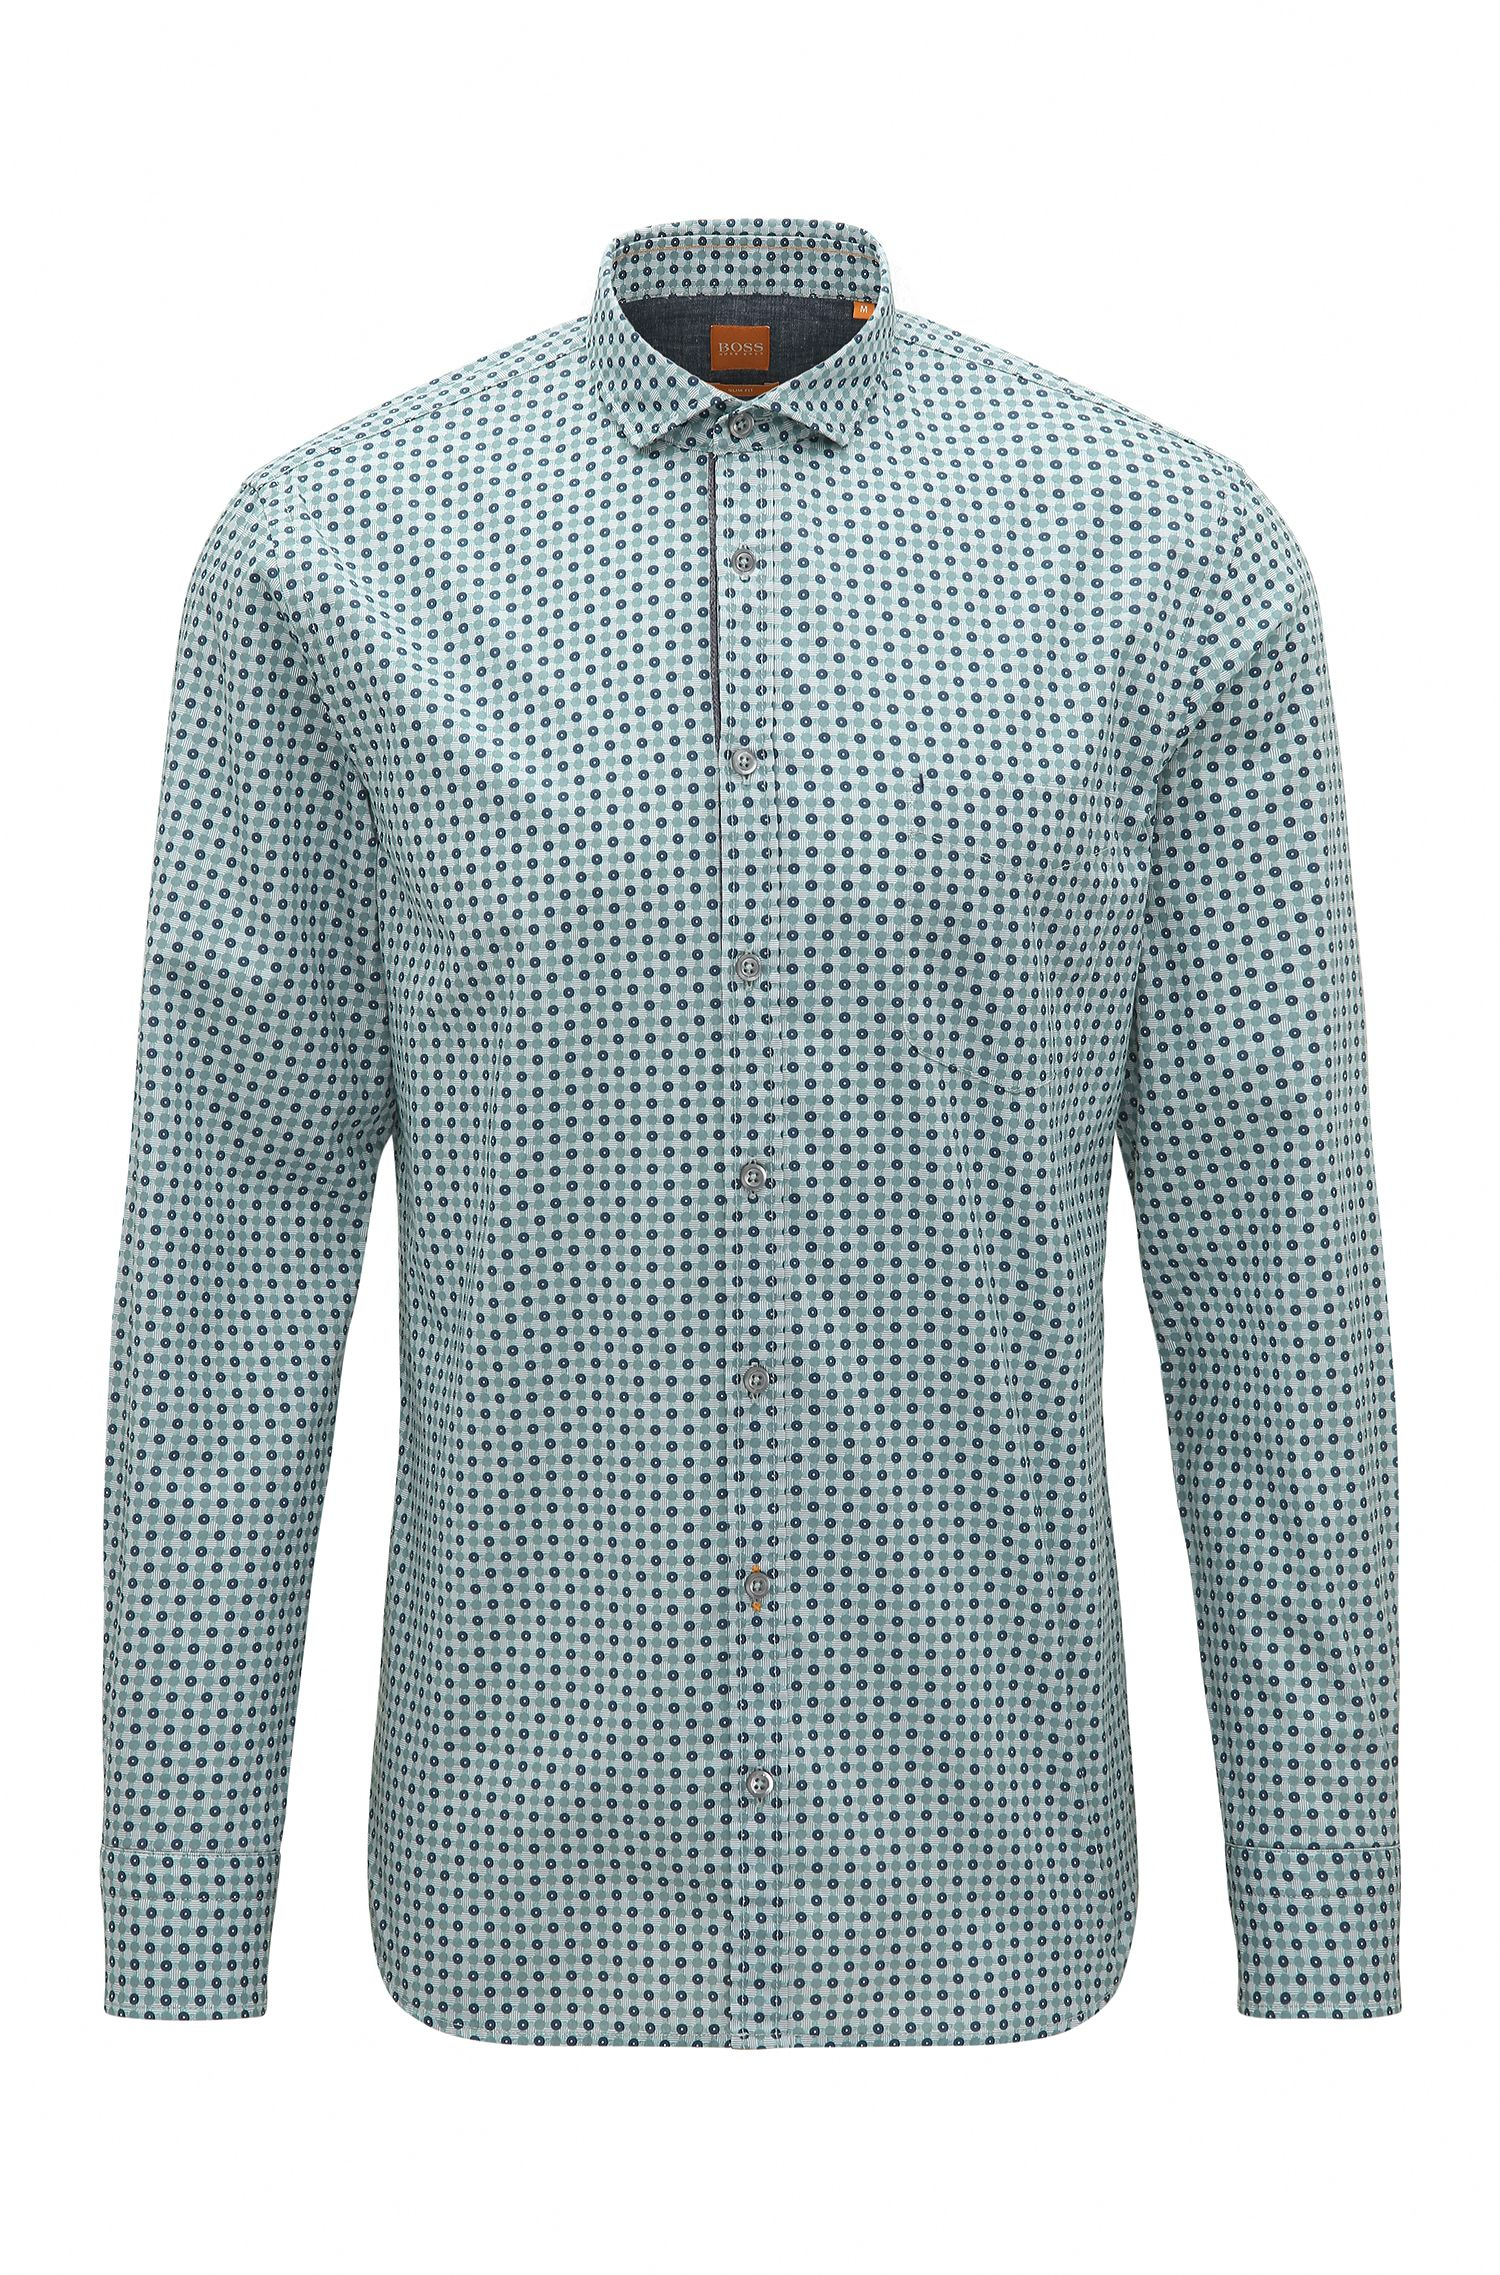 Polka Dot Cotton Button Down Shirt, Slim Fit | Cattitude